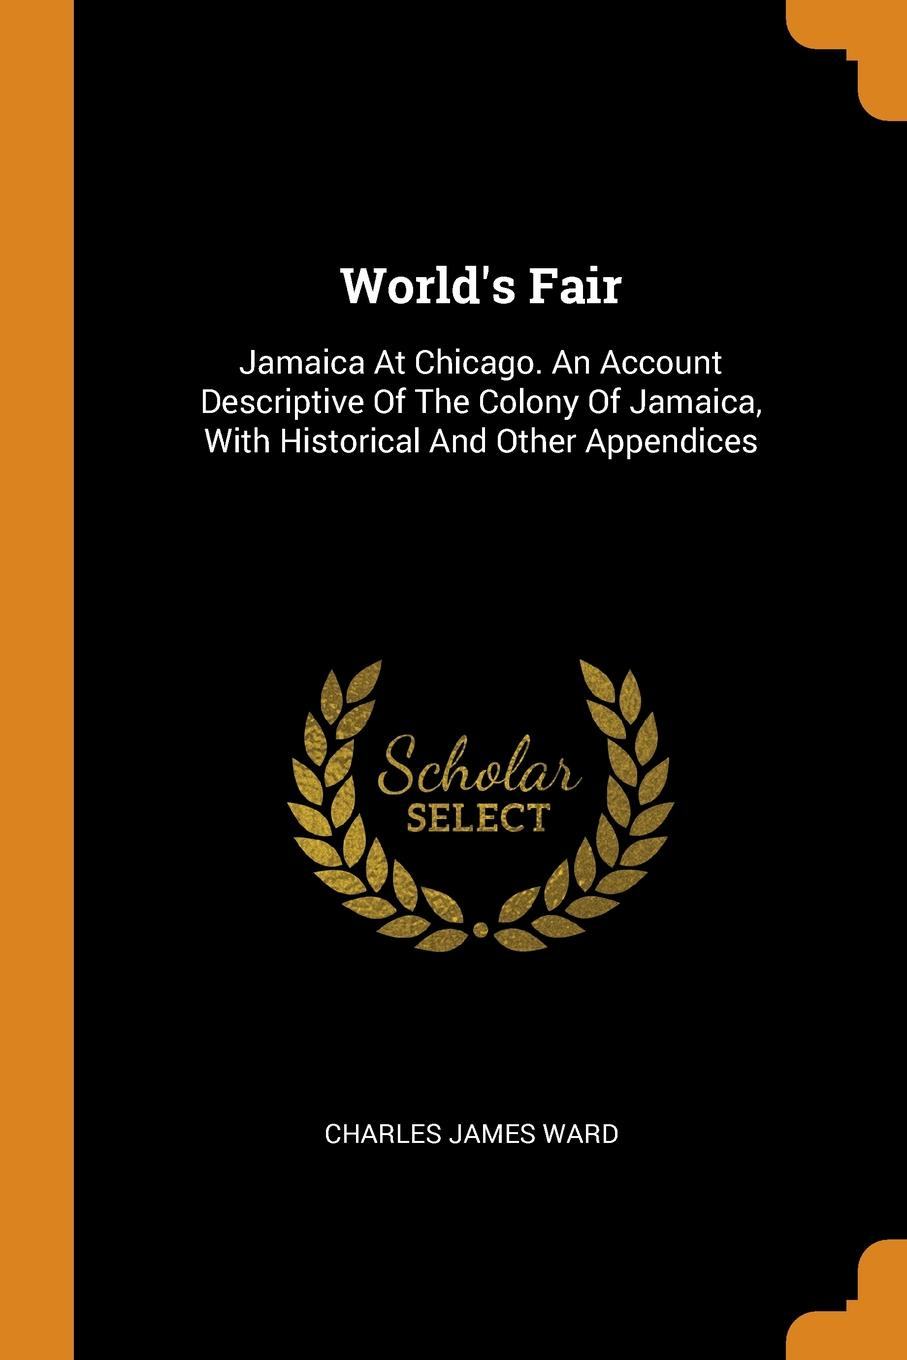 Charles James Ward World.s Fair. Jamaica At Chicago. An Account Descriptive Of The Colony Of Jamaica, With Historical And Other Appendices